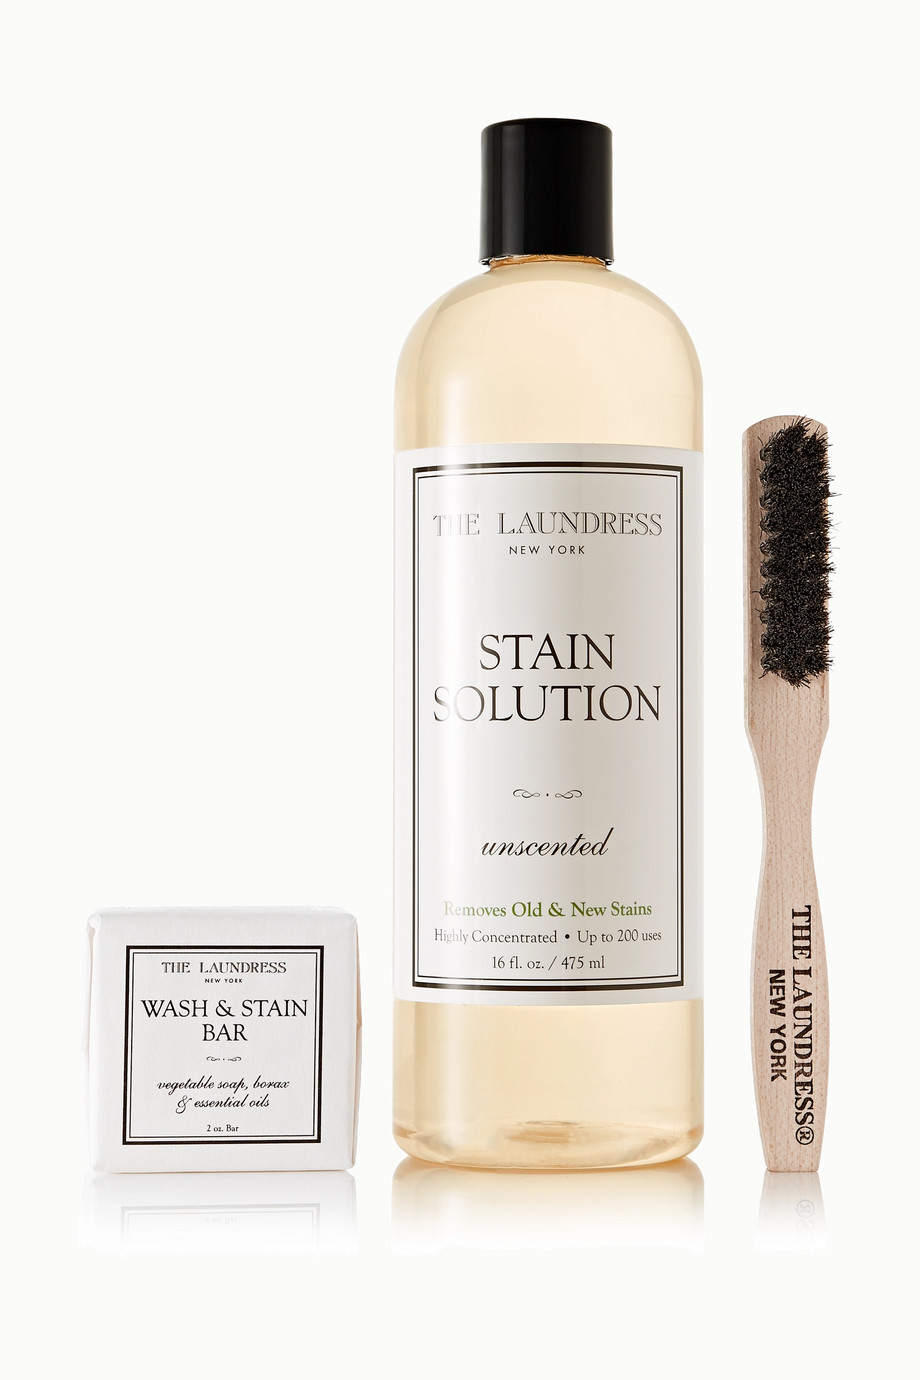 The Laundress Stain Removal Kit